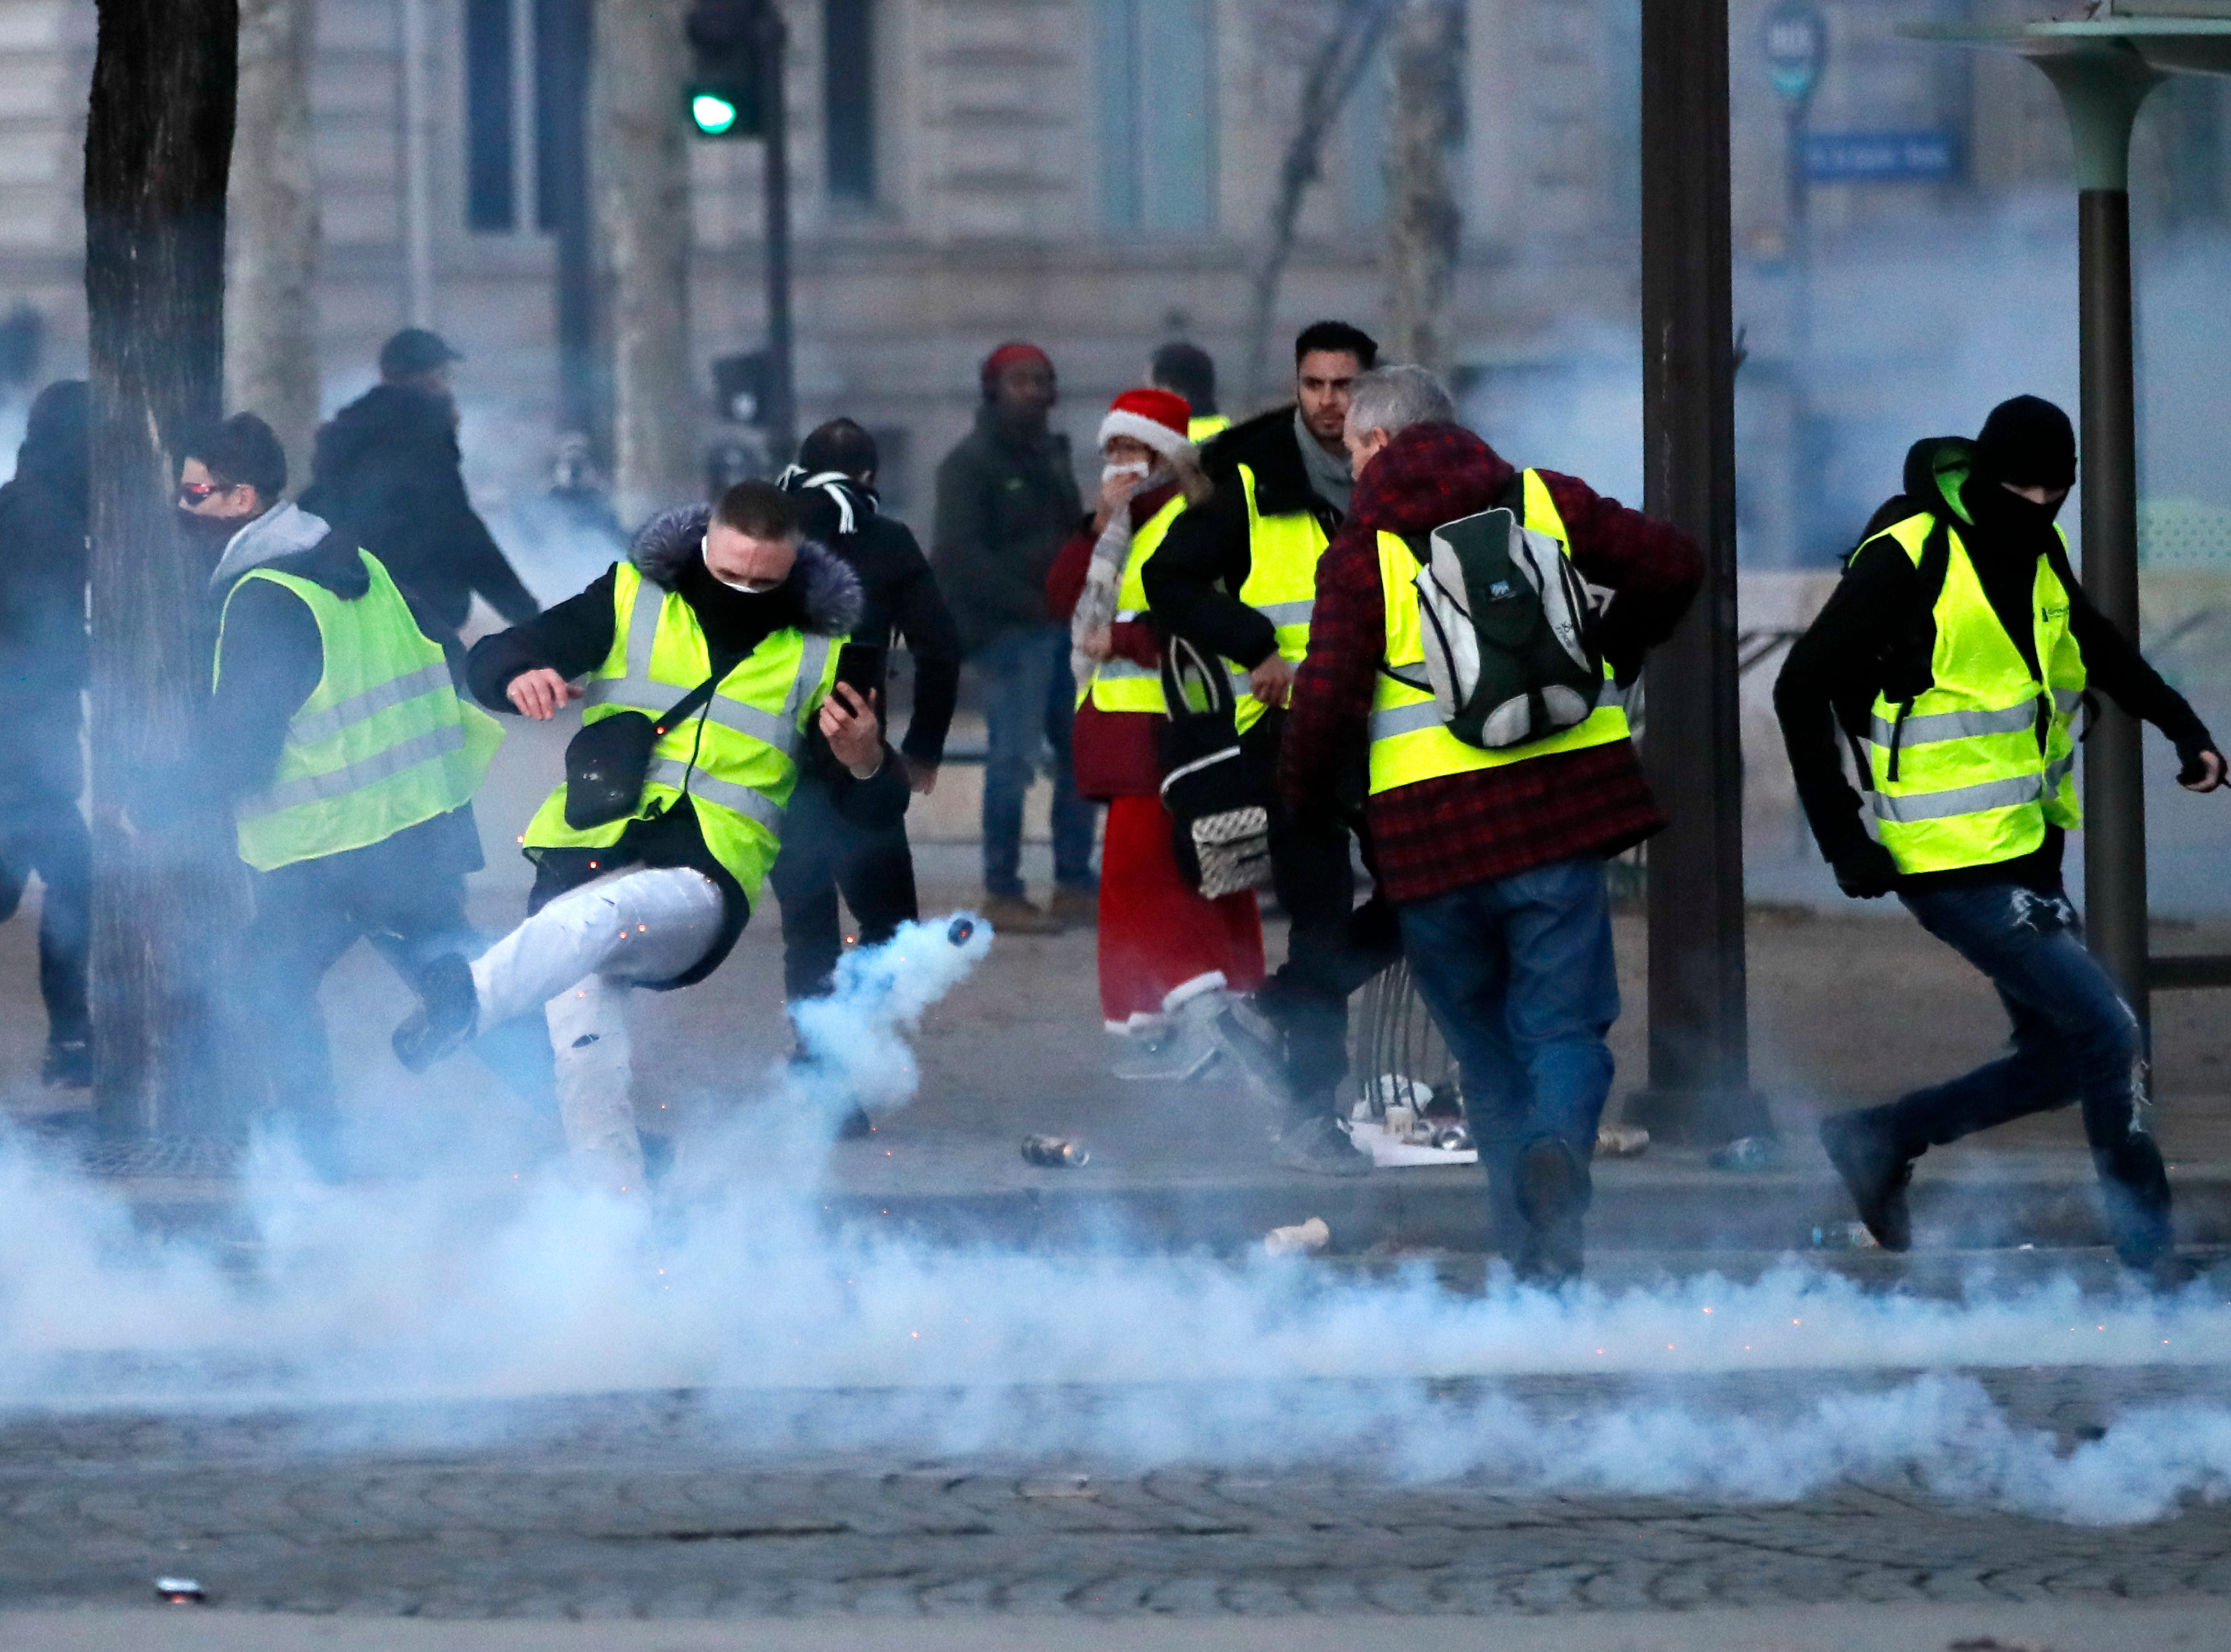 A demonstrator wearing a yellow jacket kicks in a tear gas canister on the Champs-Elysees avenue, during a protest against tax Saturday, Nov. 24, 2018 in Paris.